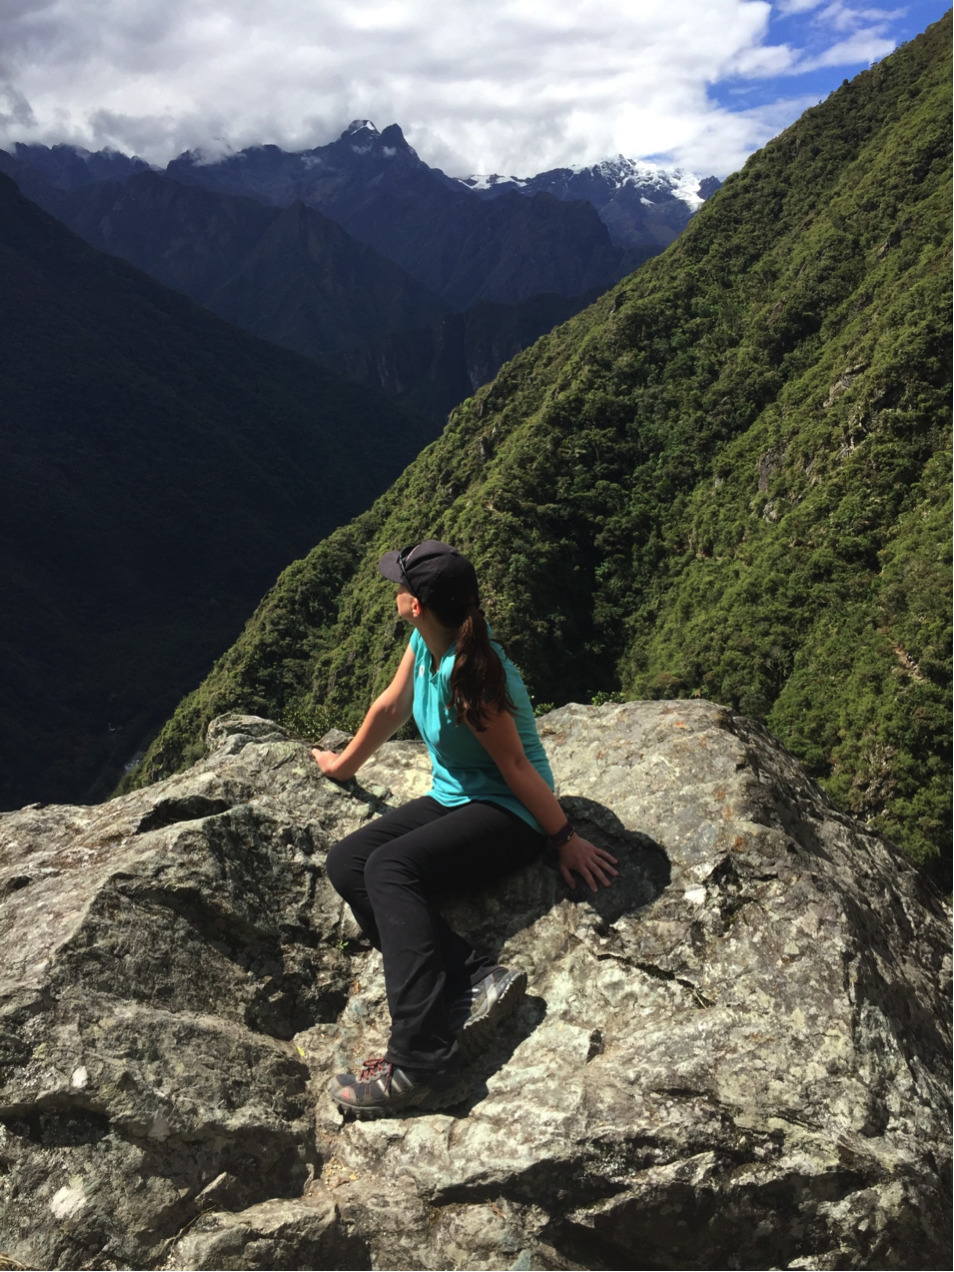 Jennifer Galuhn went hiking through the Inca Trail, leading up to Machu Picchu in Peru.